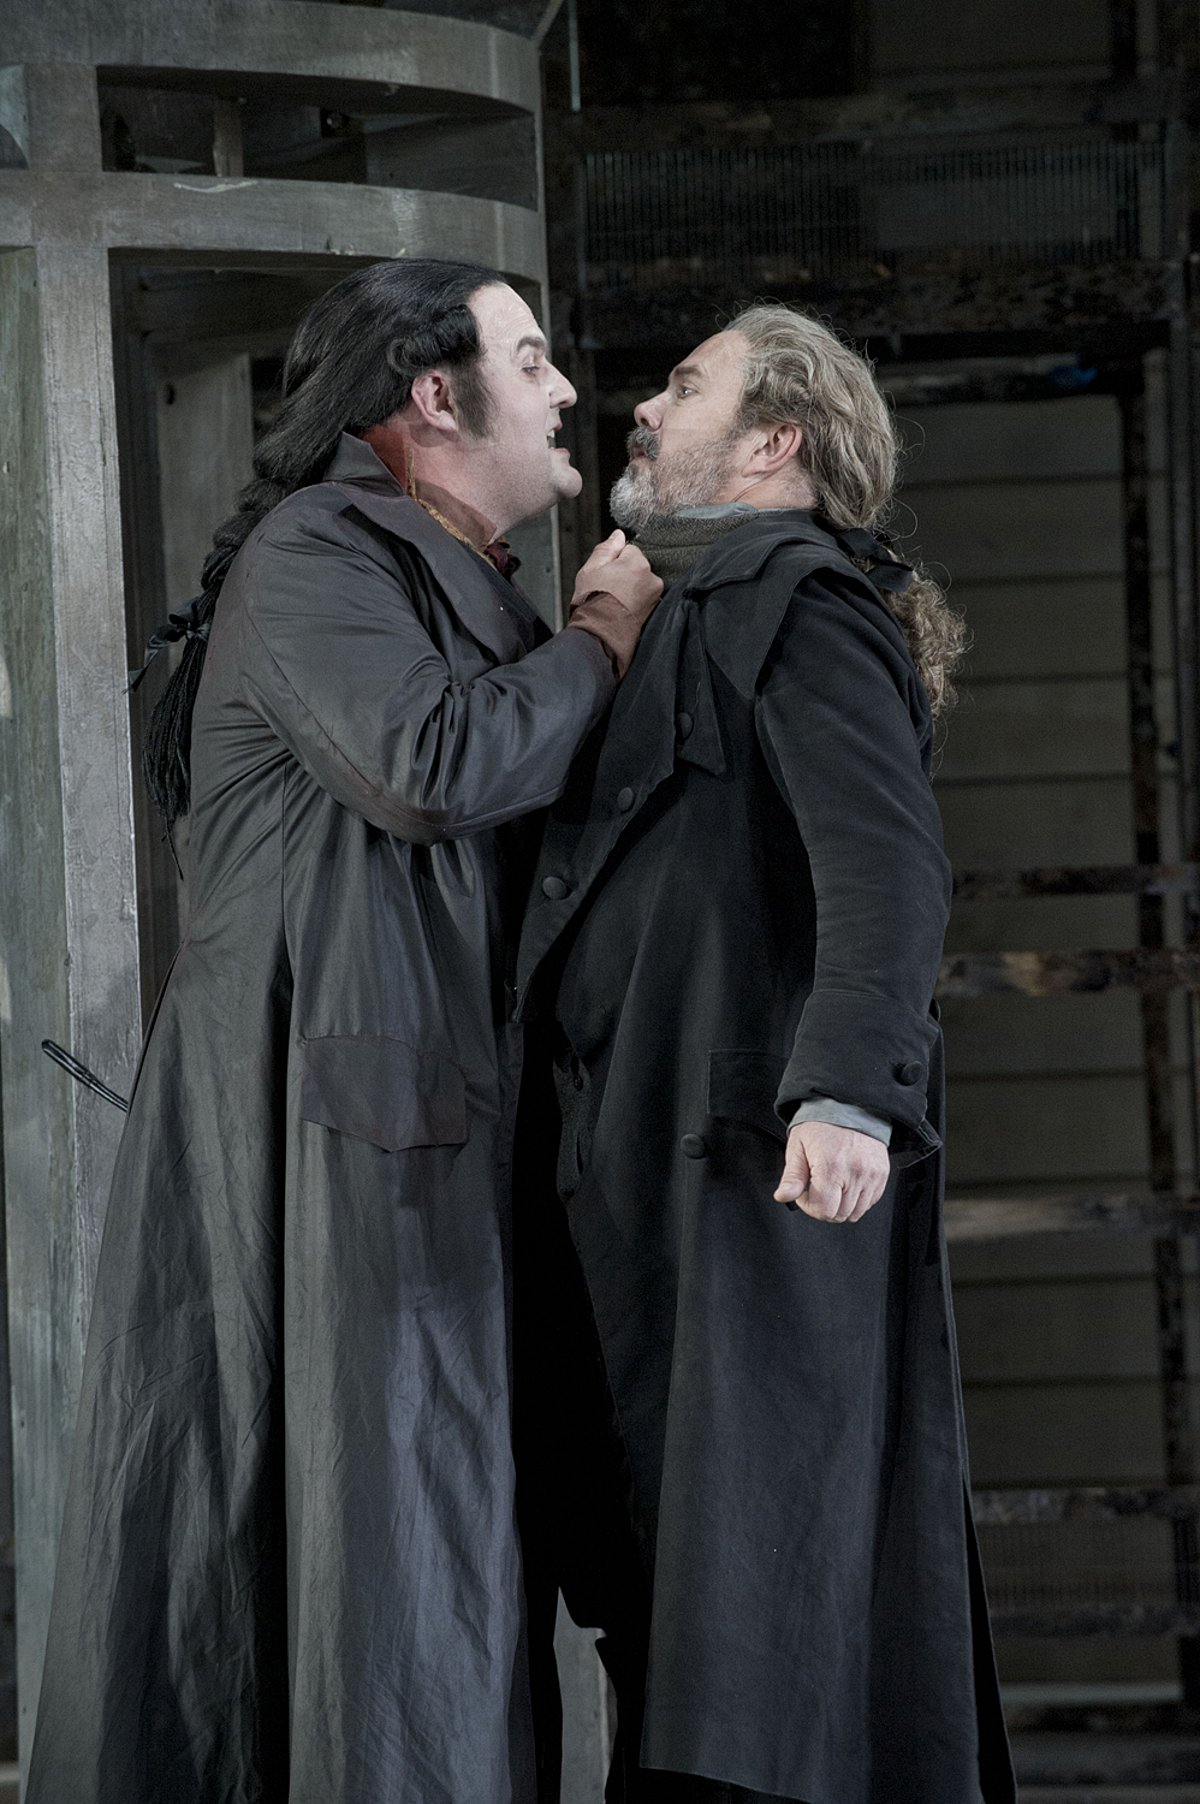 Review: A powerful performance by Garsington Opera